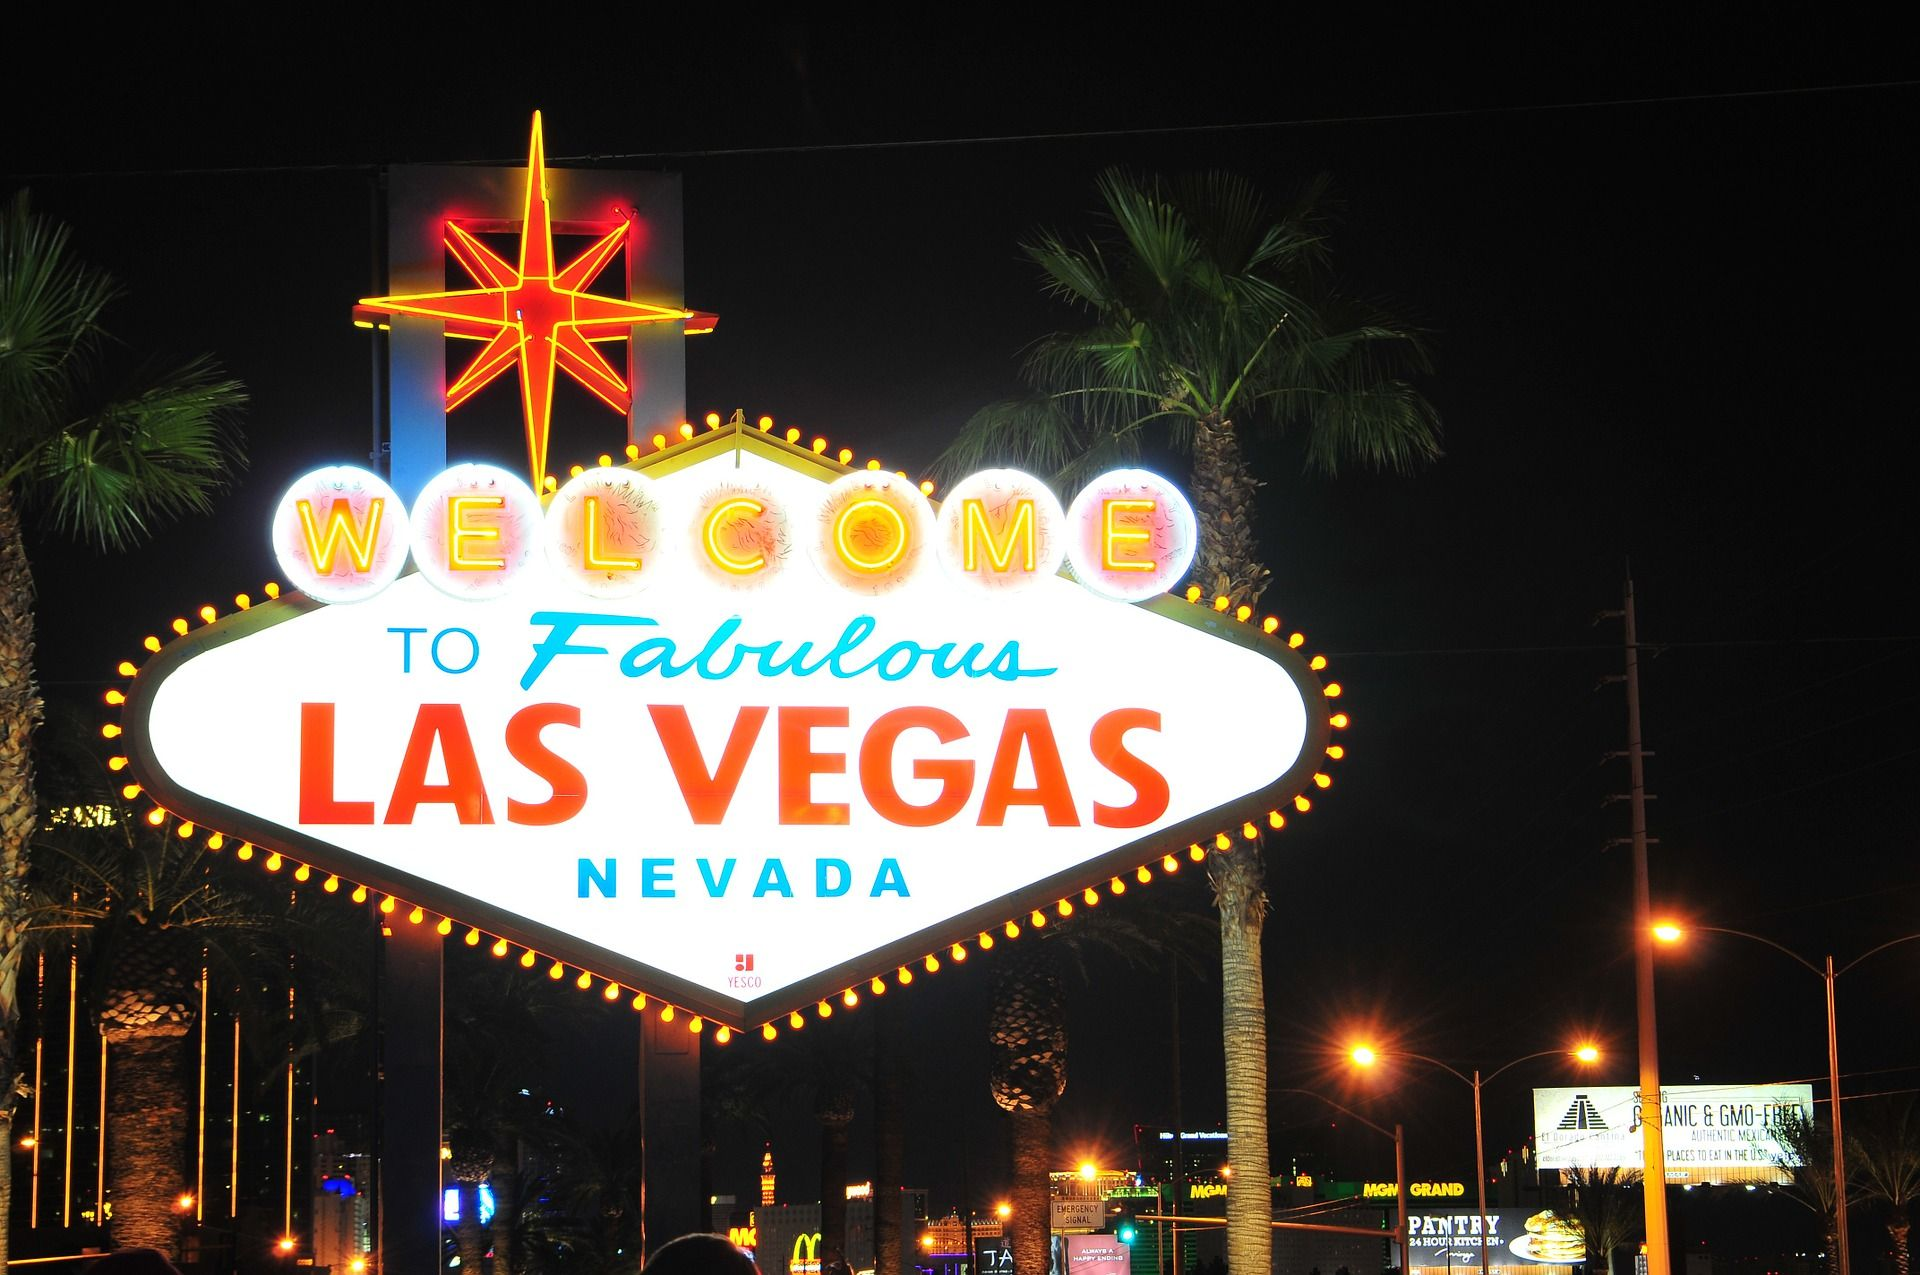 11 Helpful Las Vegas Tips For The First Time Visitors All She Things Las Vegas Tips Las Vegas Las Vegas Trip Planner